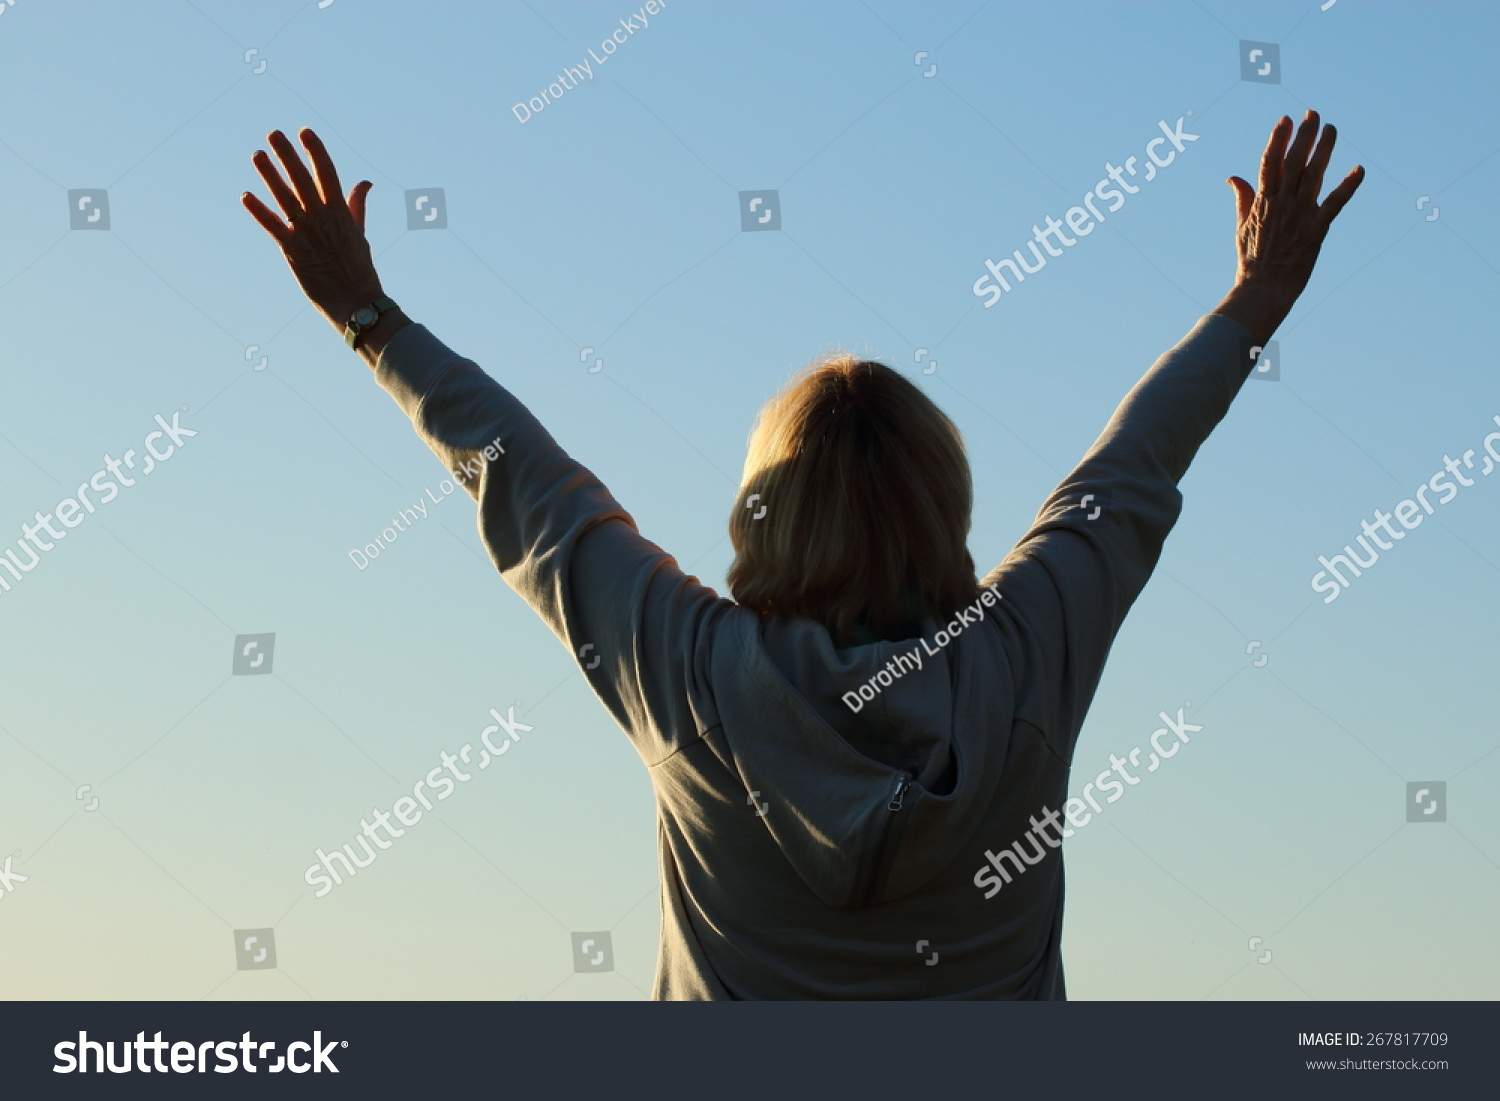 Mature woman with her hands to the sky in worship and praise and/or feeling